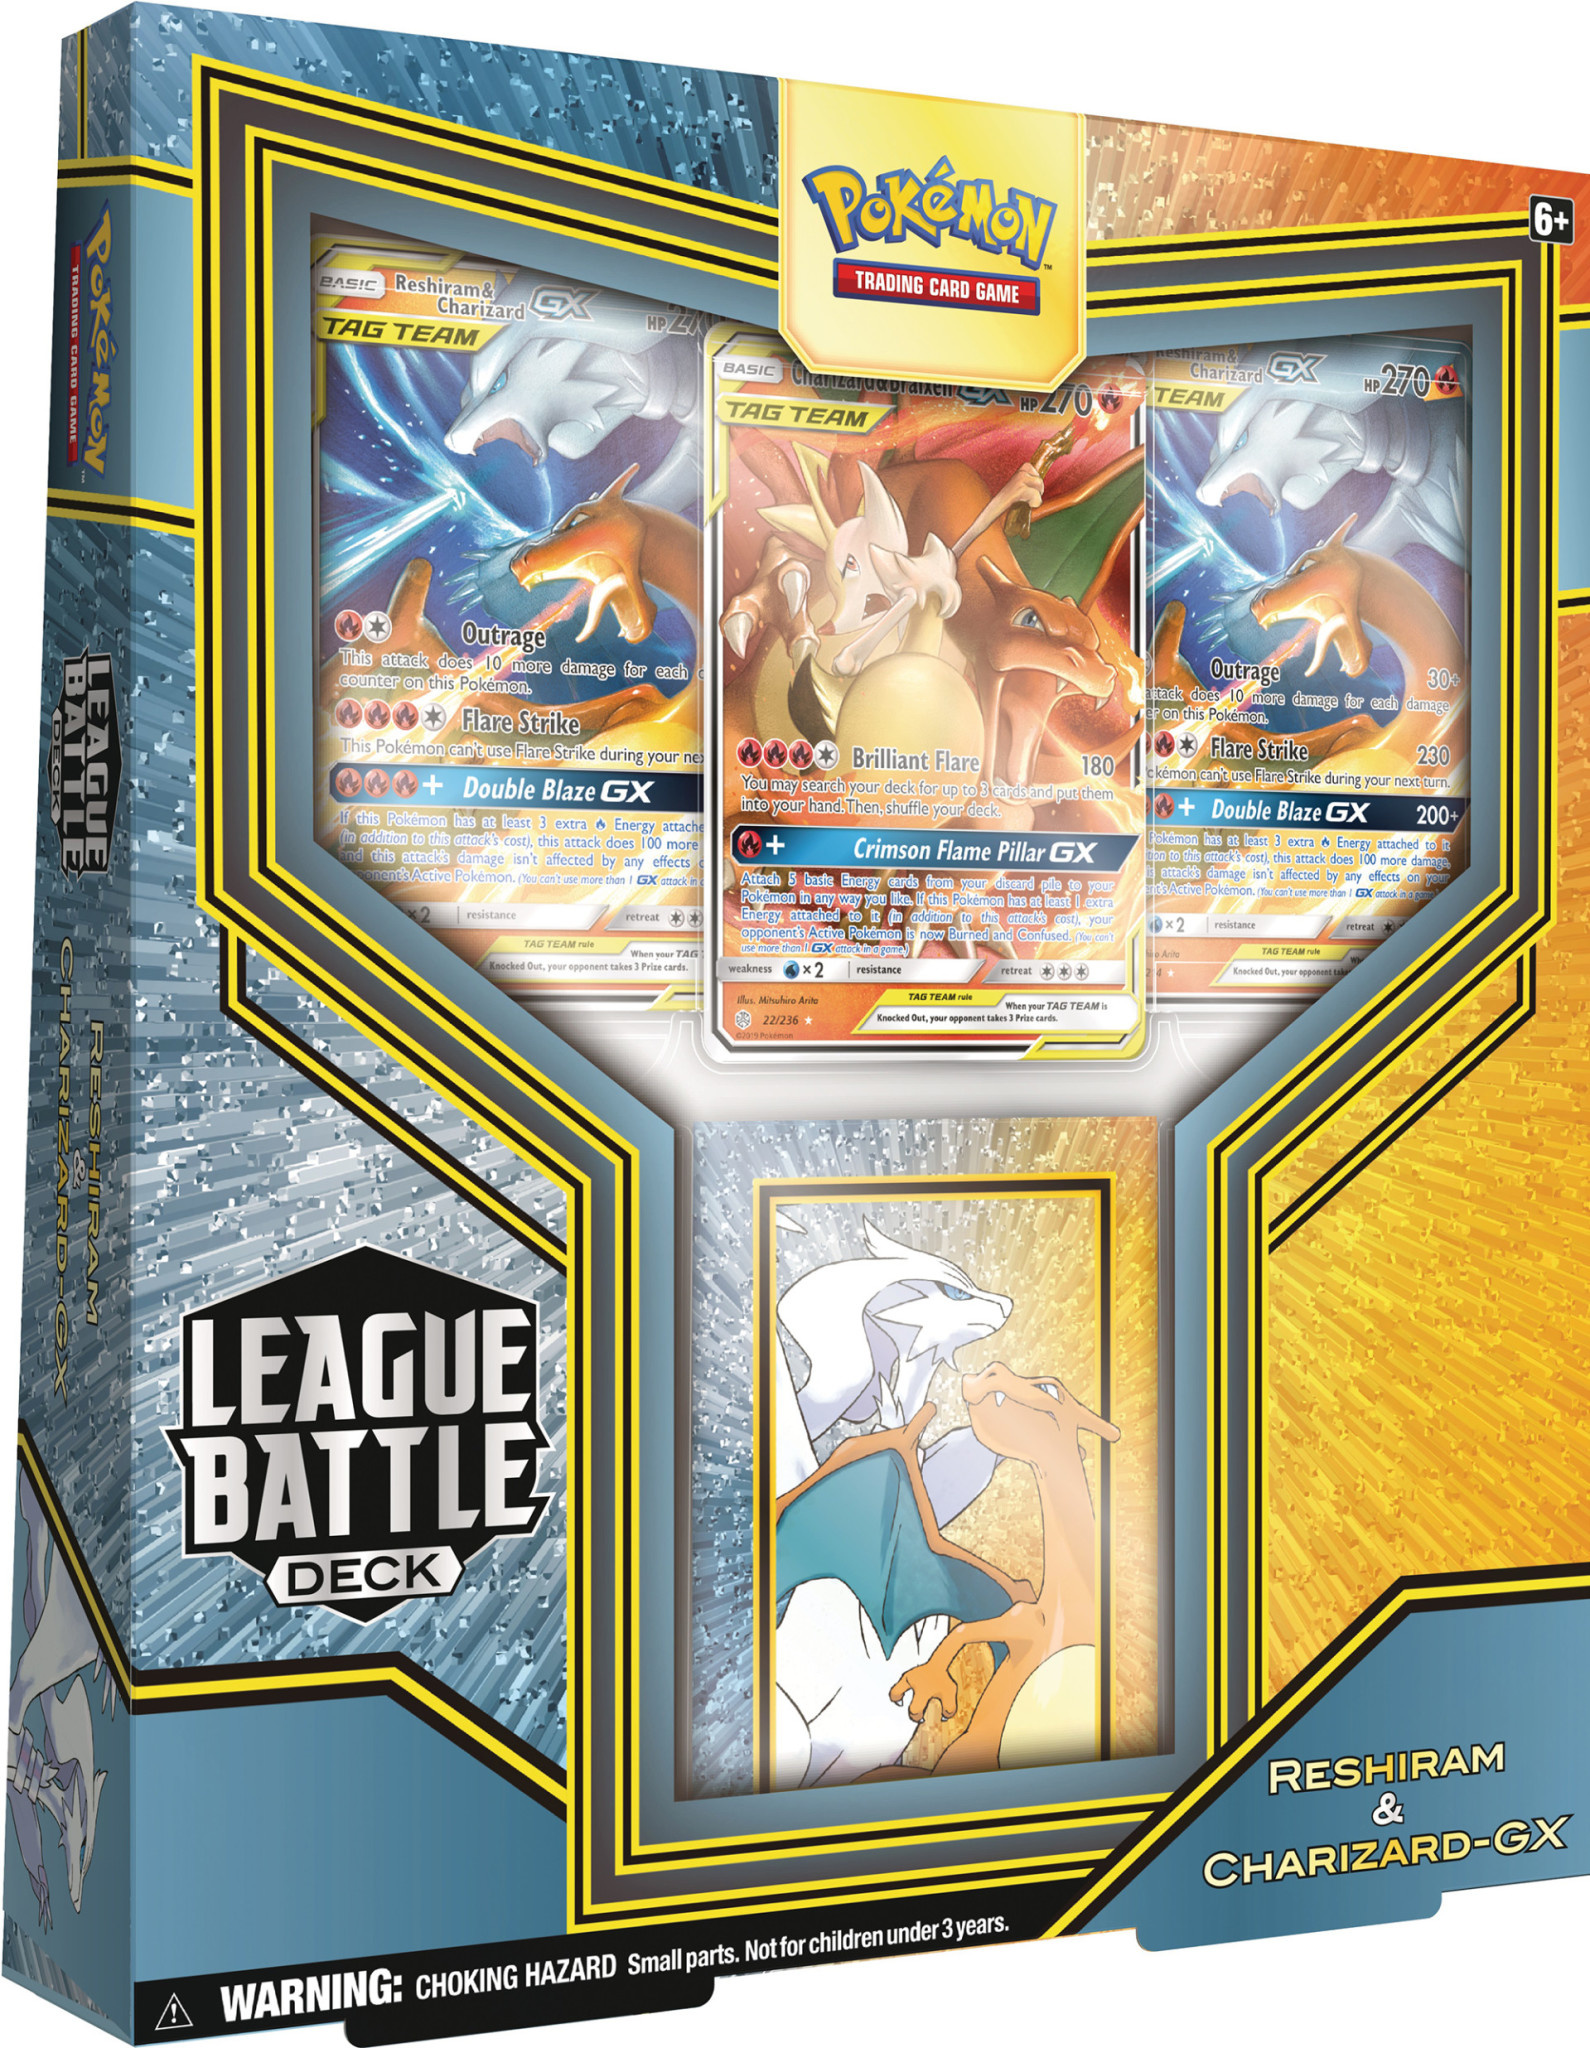 POKEMON POKEMON LEAGUE BATTLE DECK - Reshiram & Charizard-GX